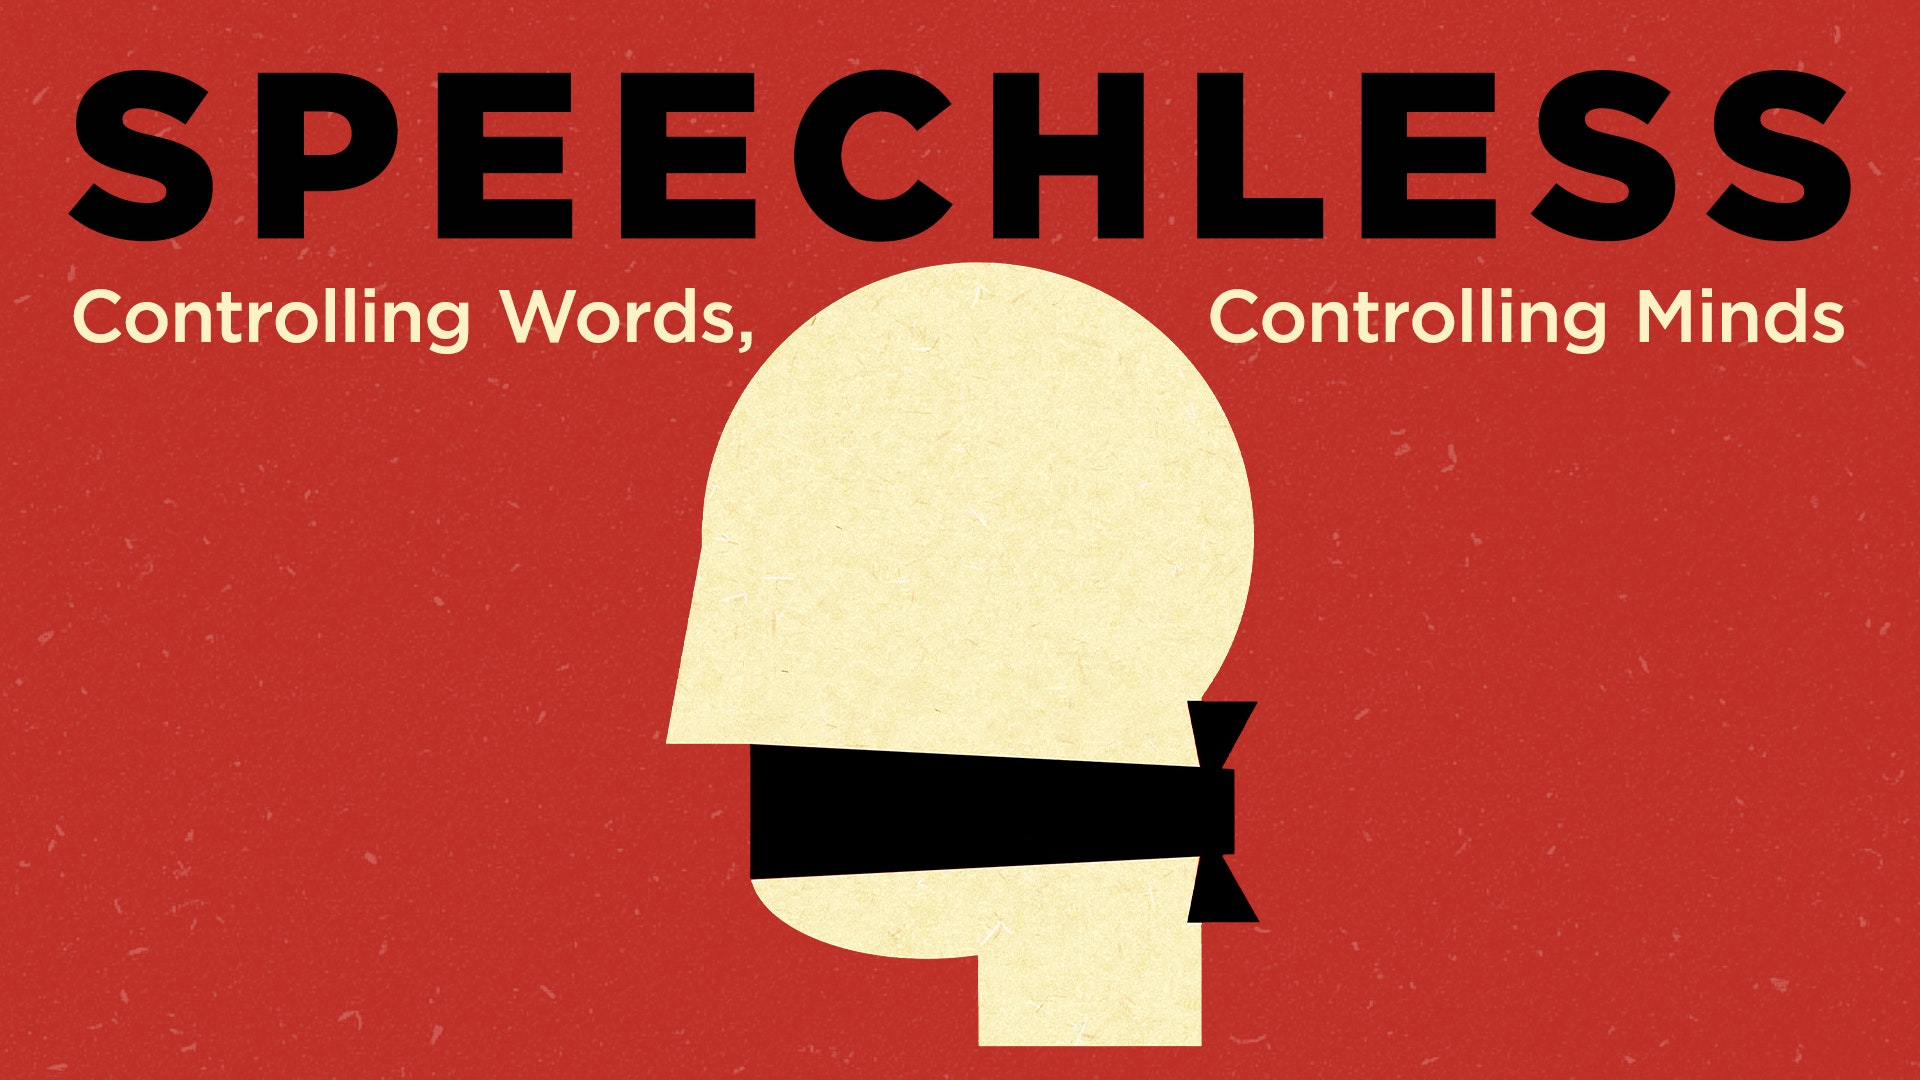 Ep. 790 - Controlling Words, Controlling Minds